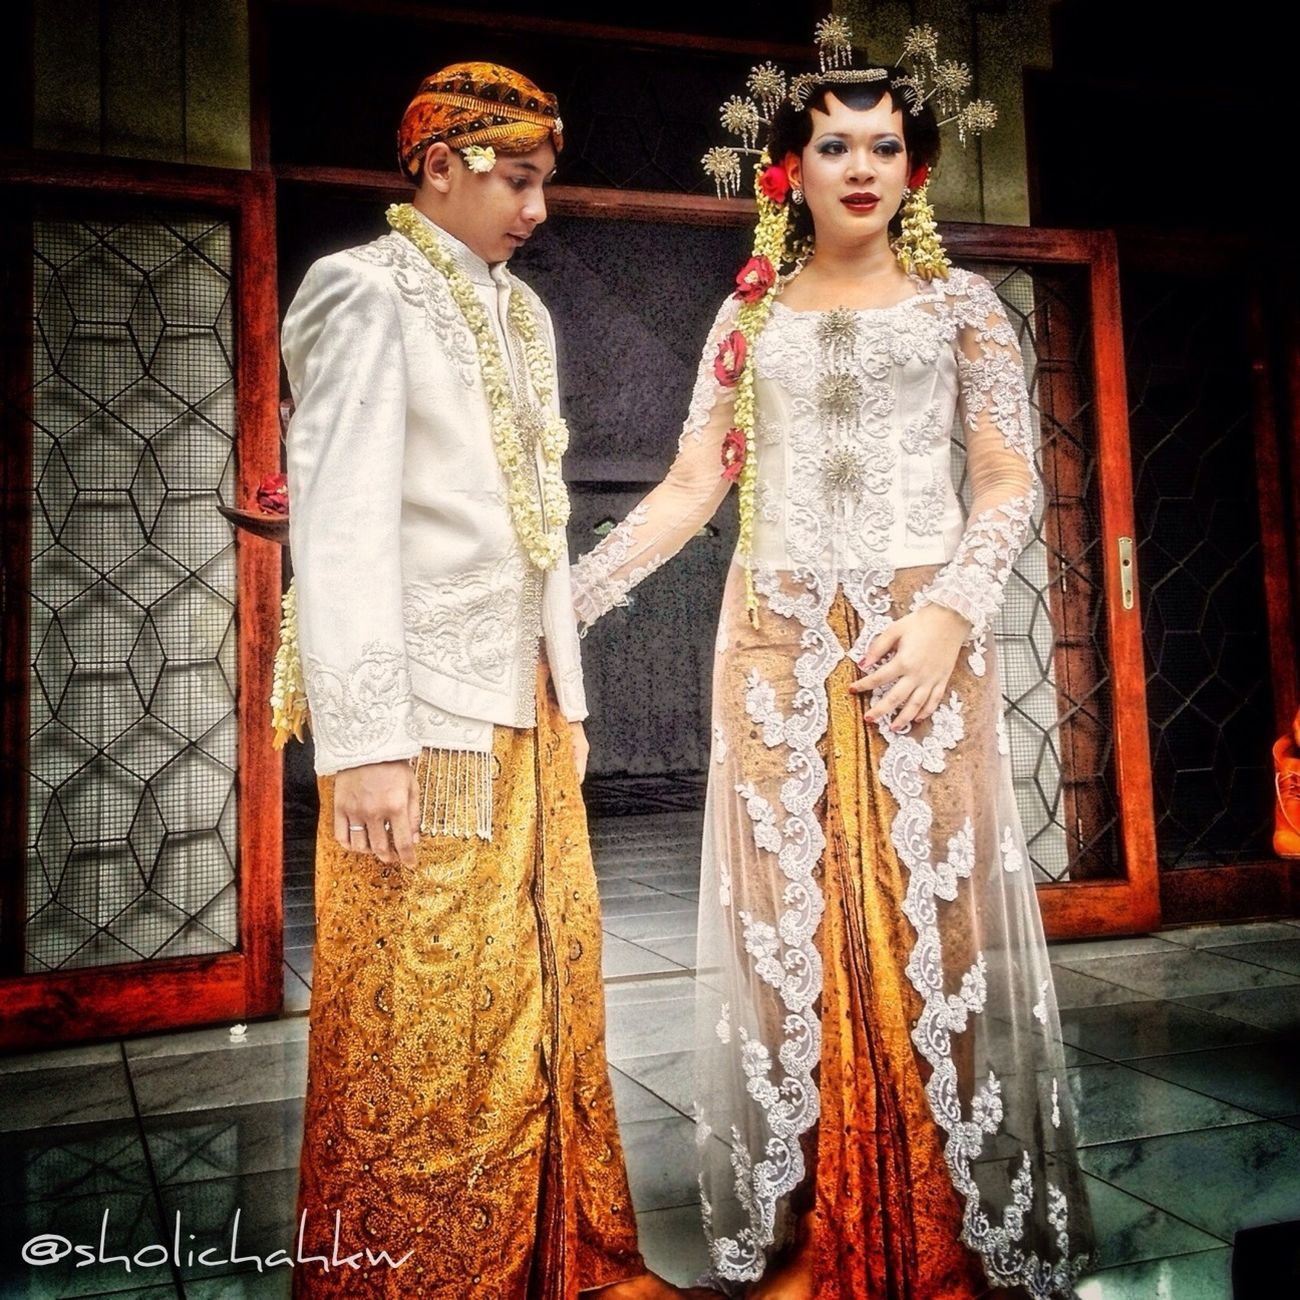 Wedding Love INDONESIA Couple Iphonesia Traditional GangPolos Gang_family